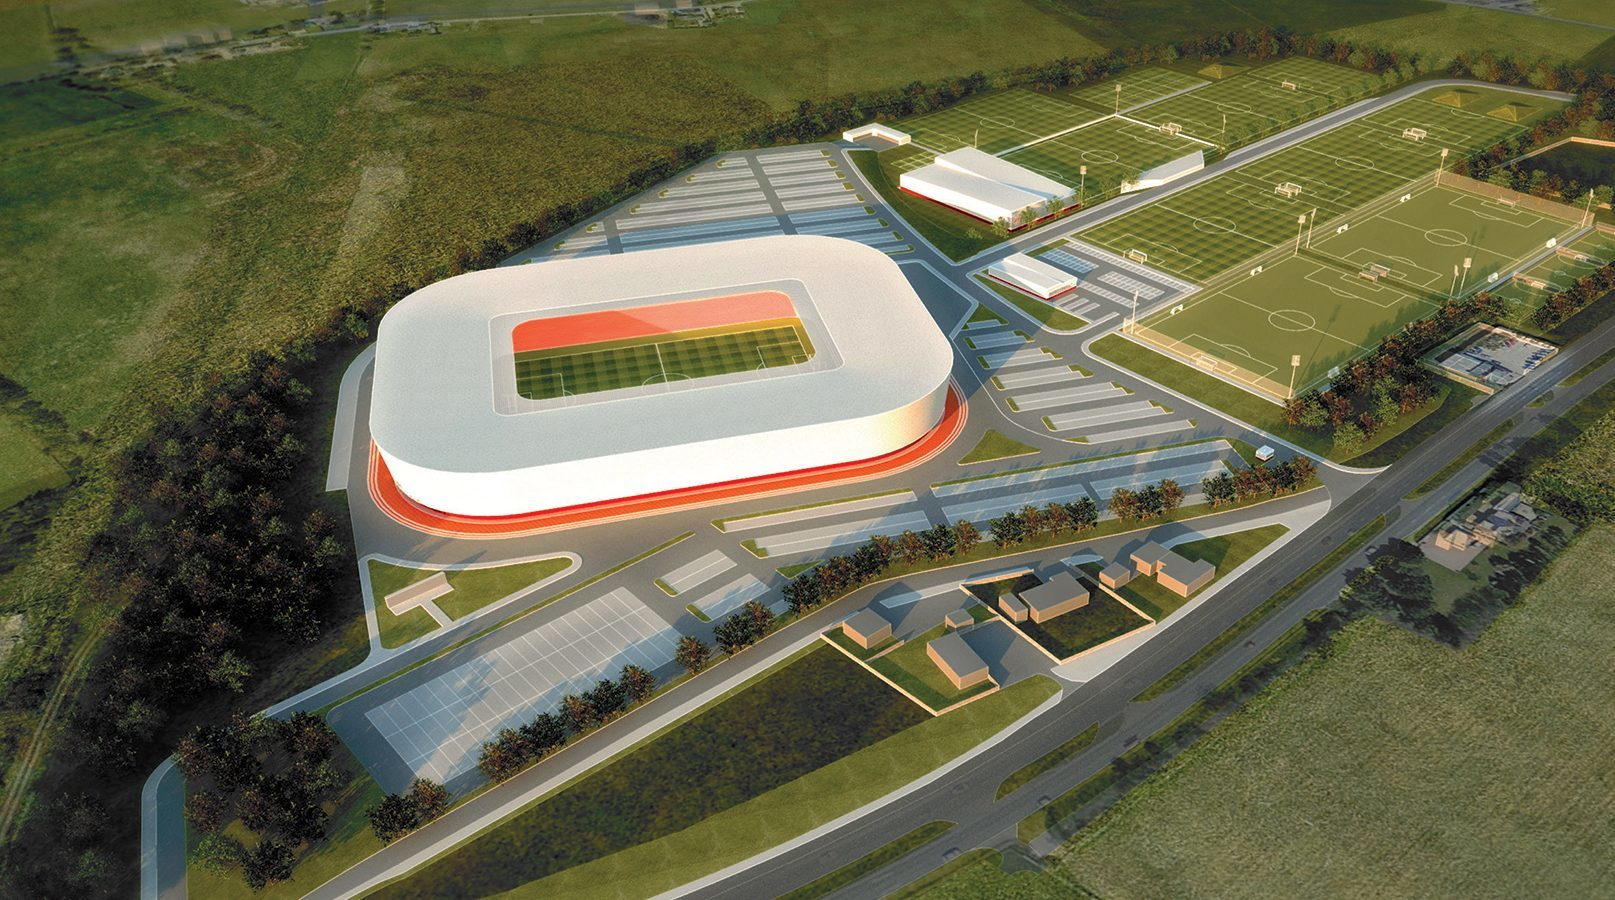 Artist's impression of Aberdeen's new stadium.